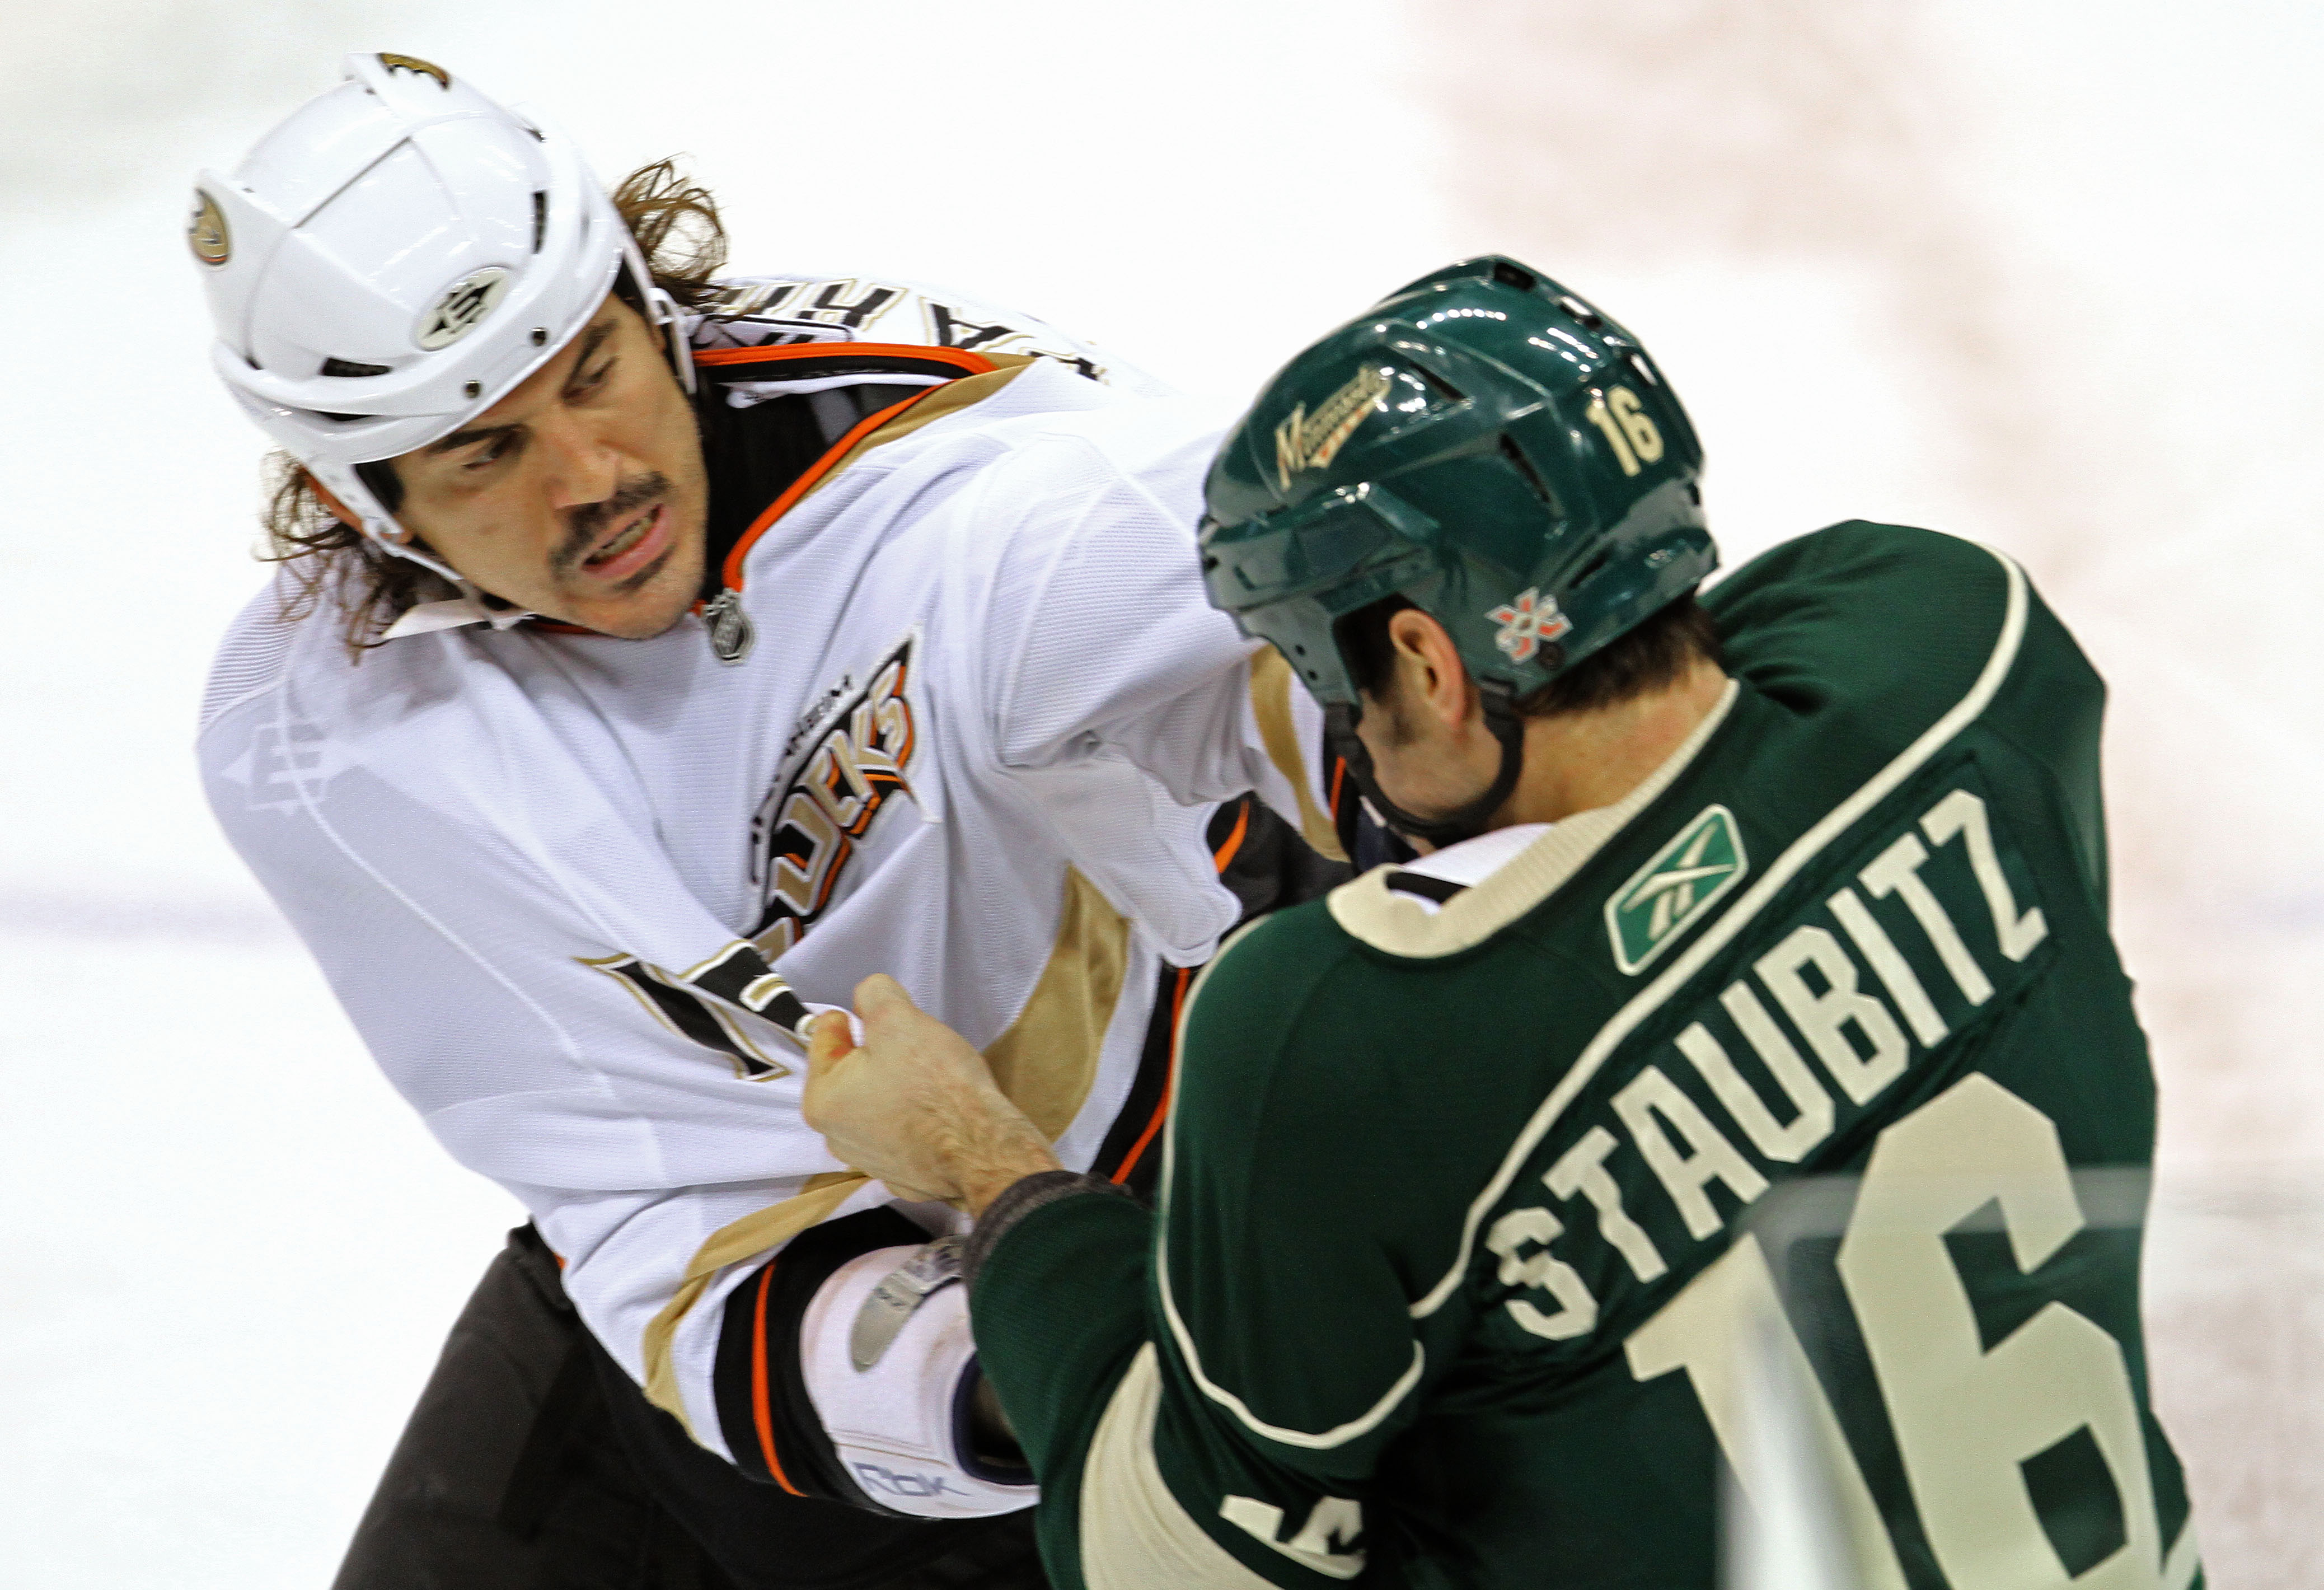 BRUCE BISPING ¥ bbisping@startribune.com St. Paul, MN., Wednesday, 11/17/10] Minnesota Wild vs Anaheim Ducks, (left to right) The Duck's George Parros and Wild's Brad Staubitz fought infront of the benches. Both received 5 minute majors for fighting